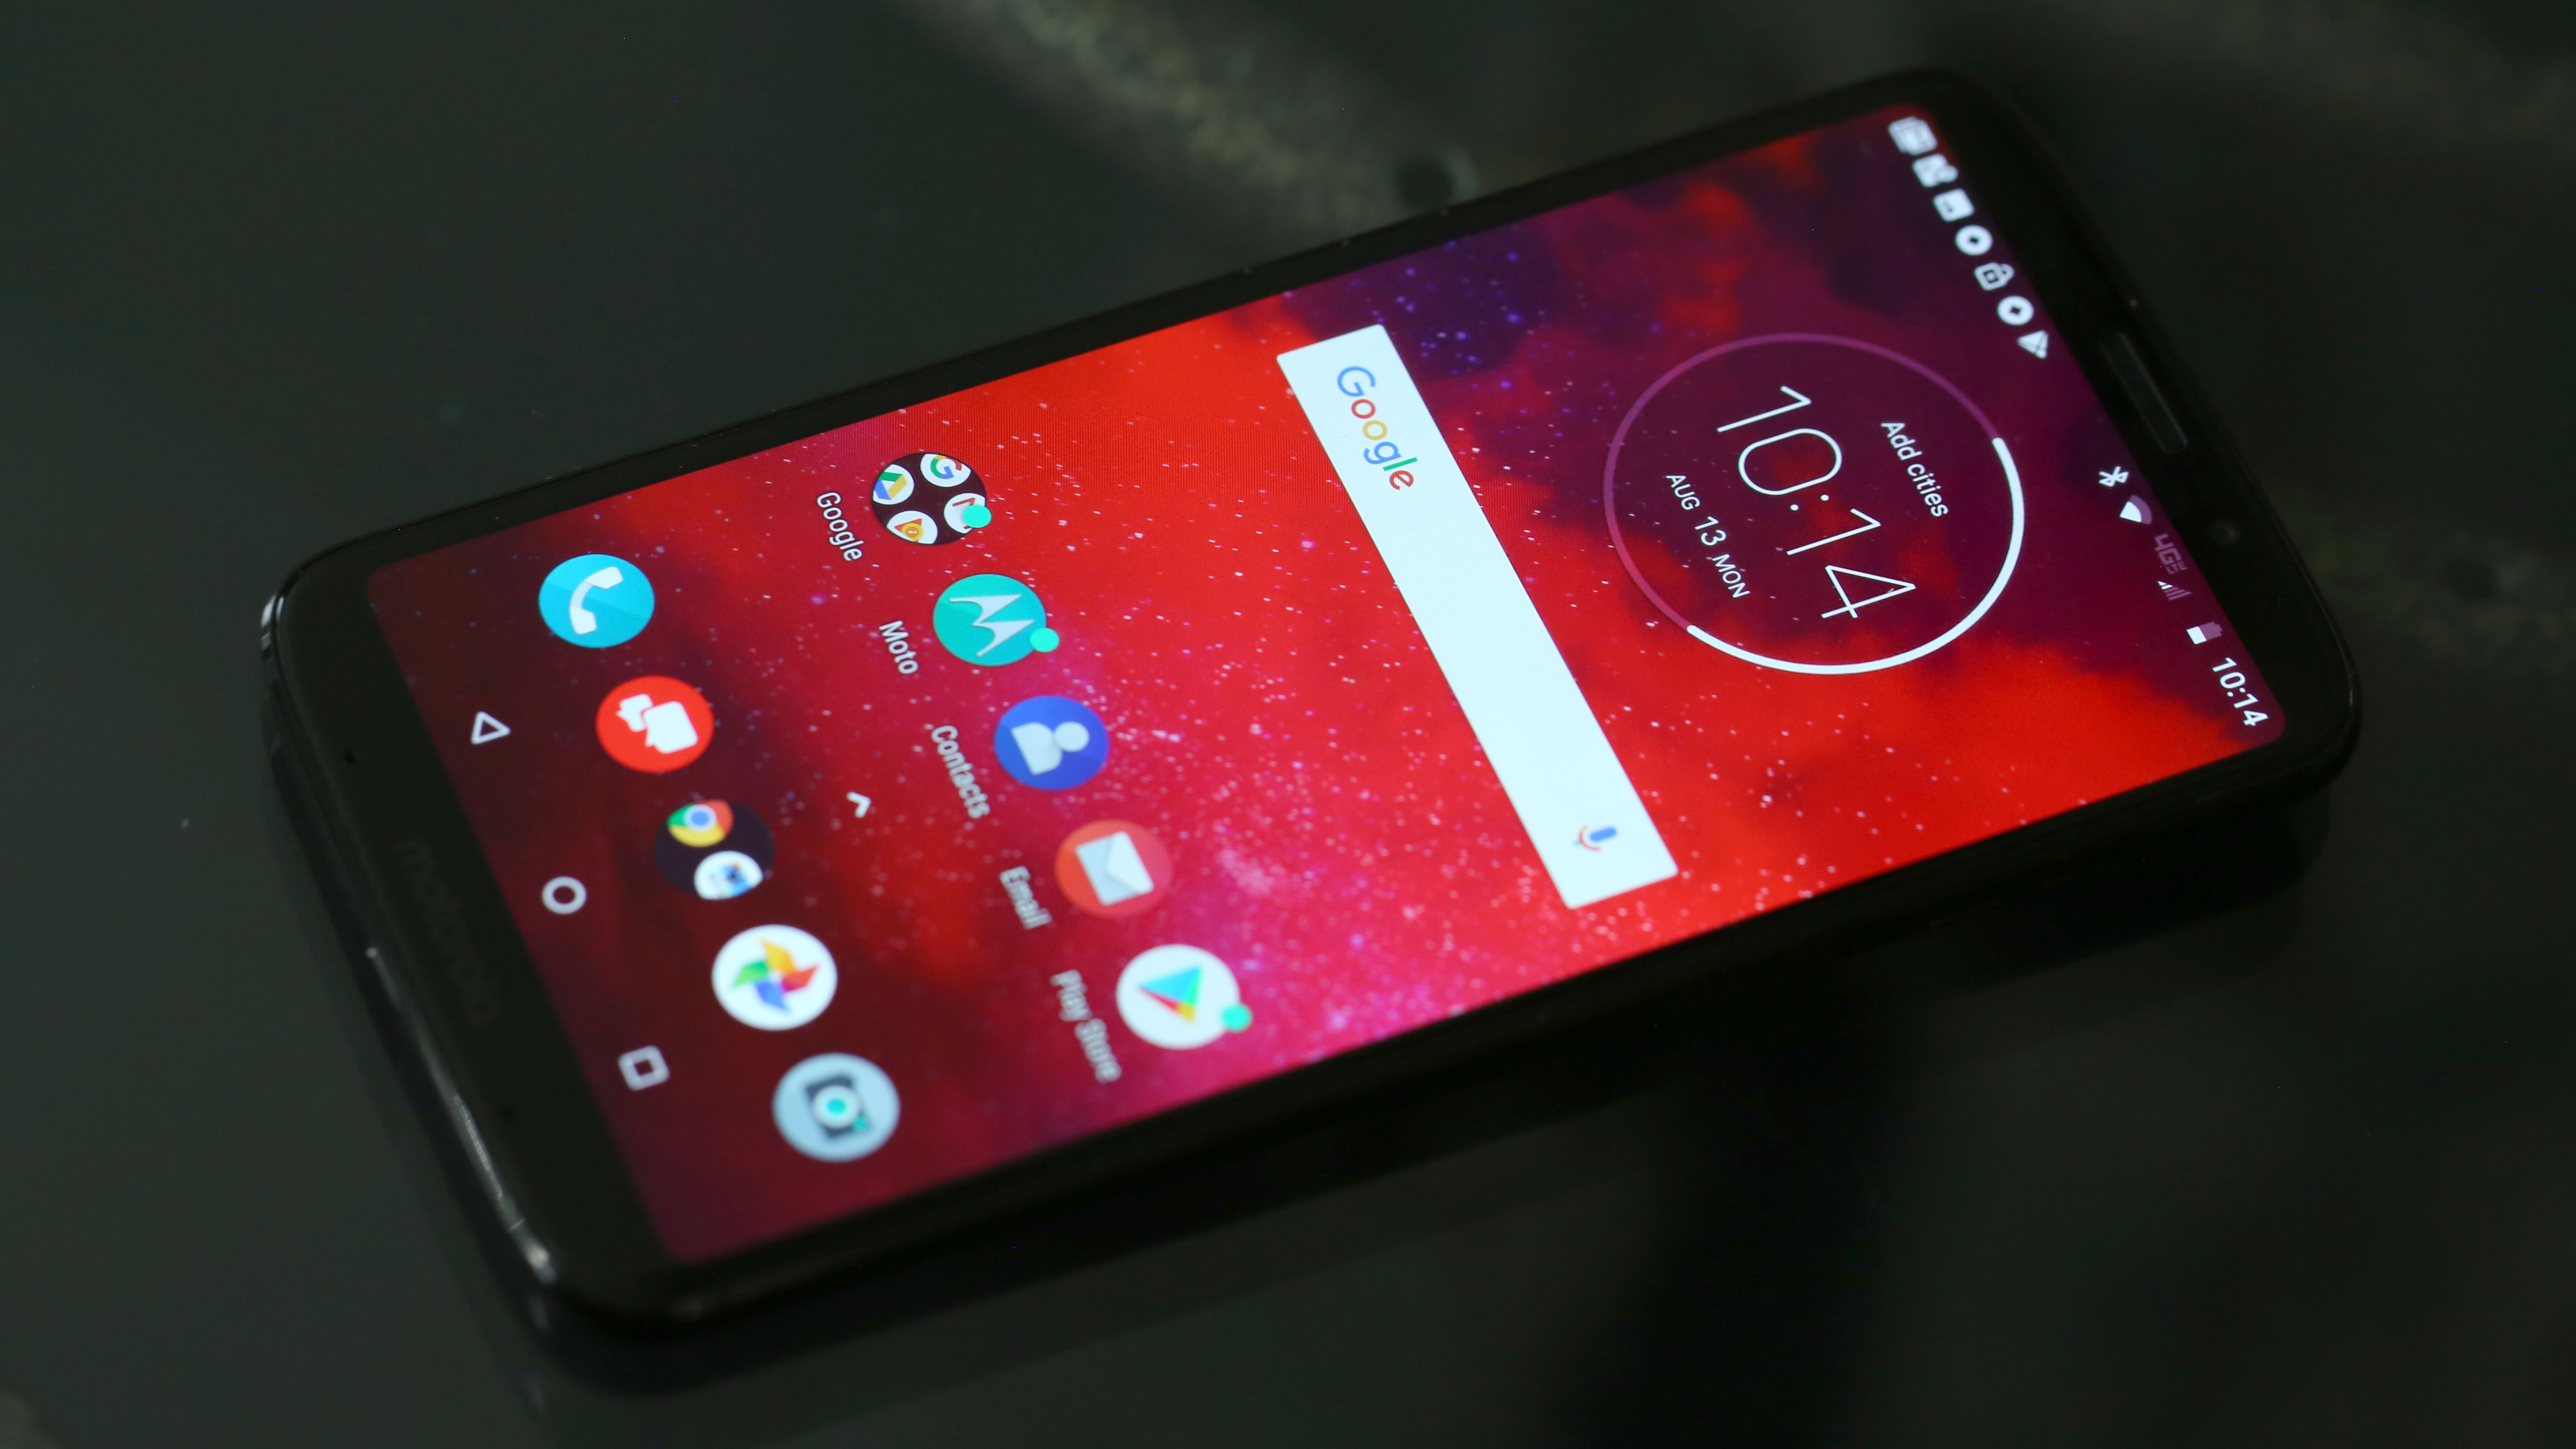 Moto Z3 Hands-on: Motorola's Half-priced iPhone X Awaits its 5G Backpack